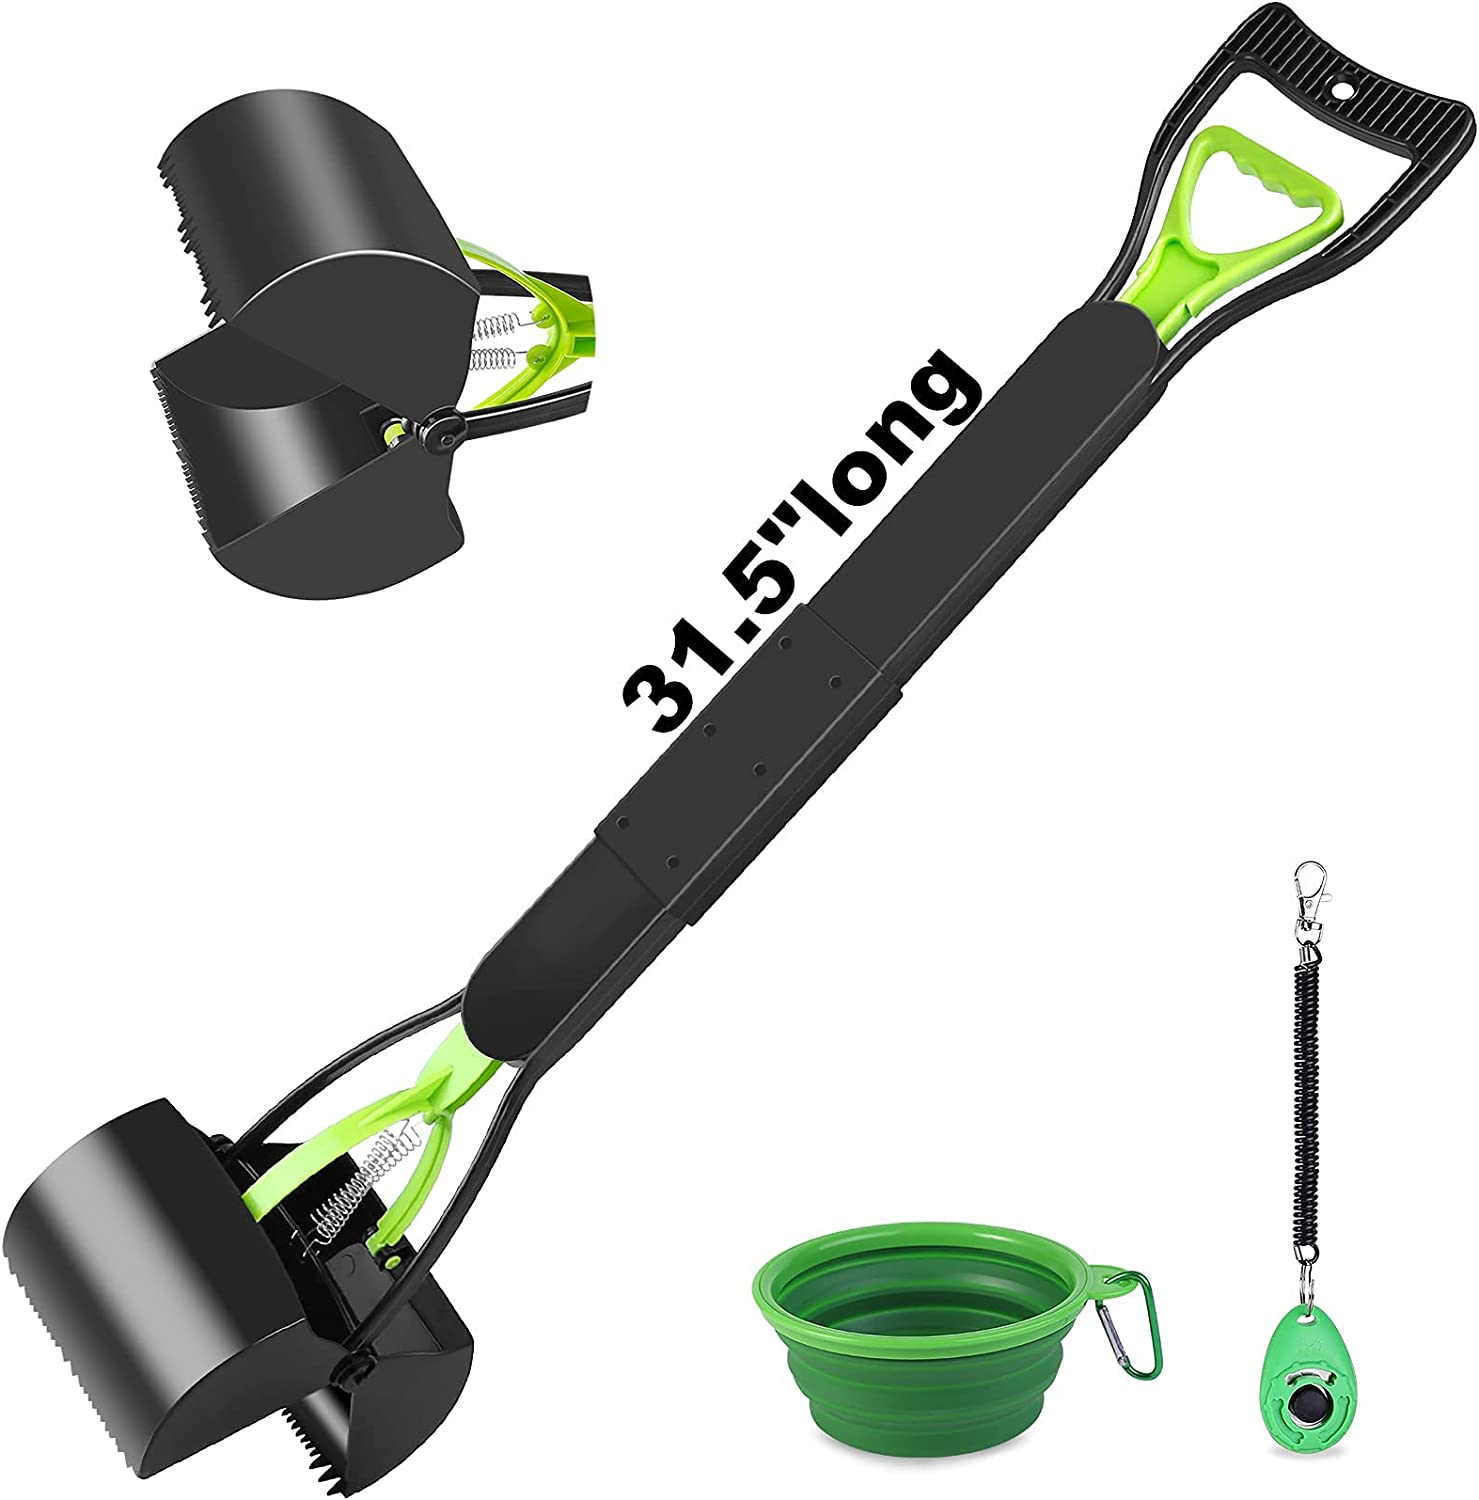 RENJINGG Overseas parallel import regular item Spring new work one after another Heavy-Duty Portable pet Poop Large for Suitable Shovel